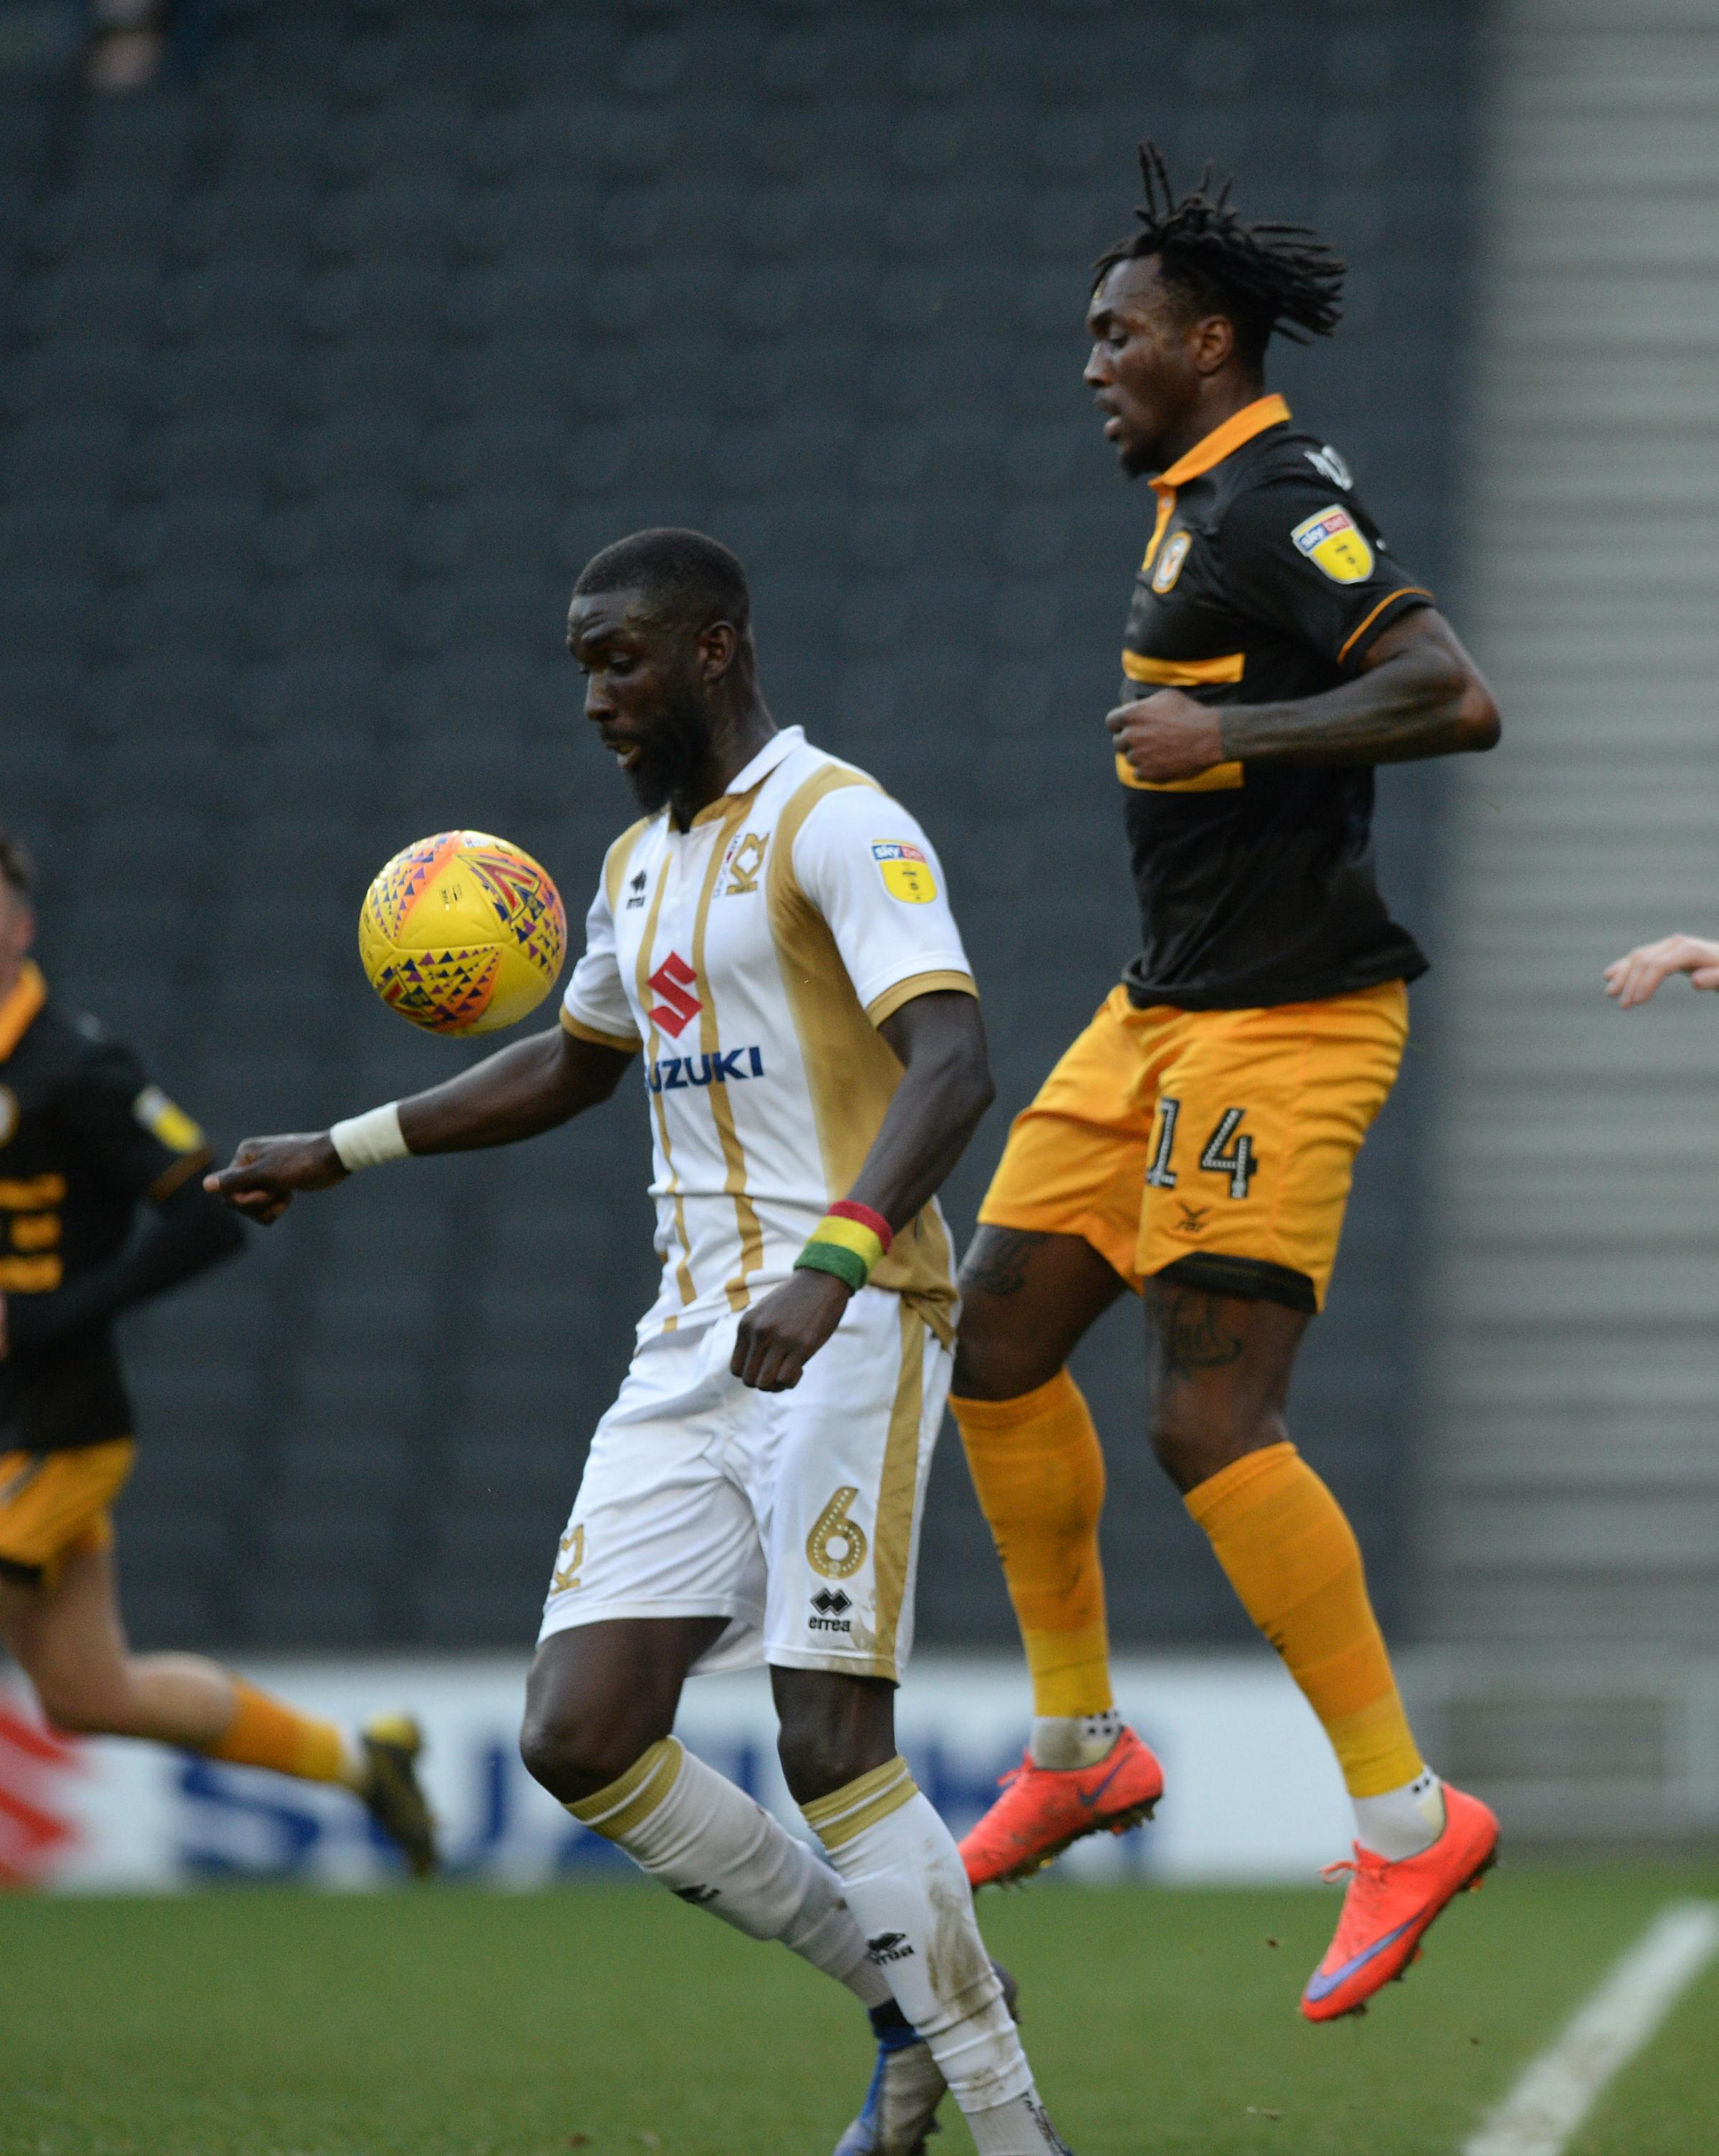 DEBUT: Newport County striker Ade Azeez, right, in action at MK Dons last week